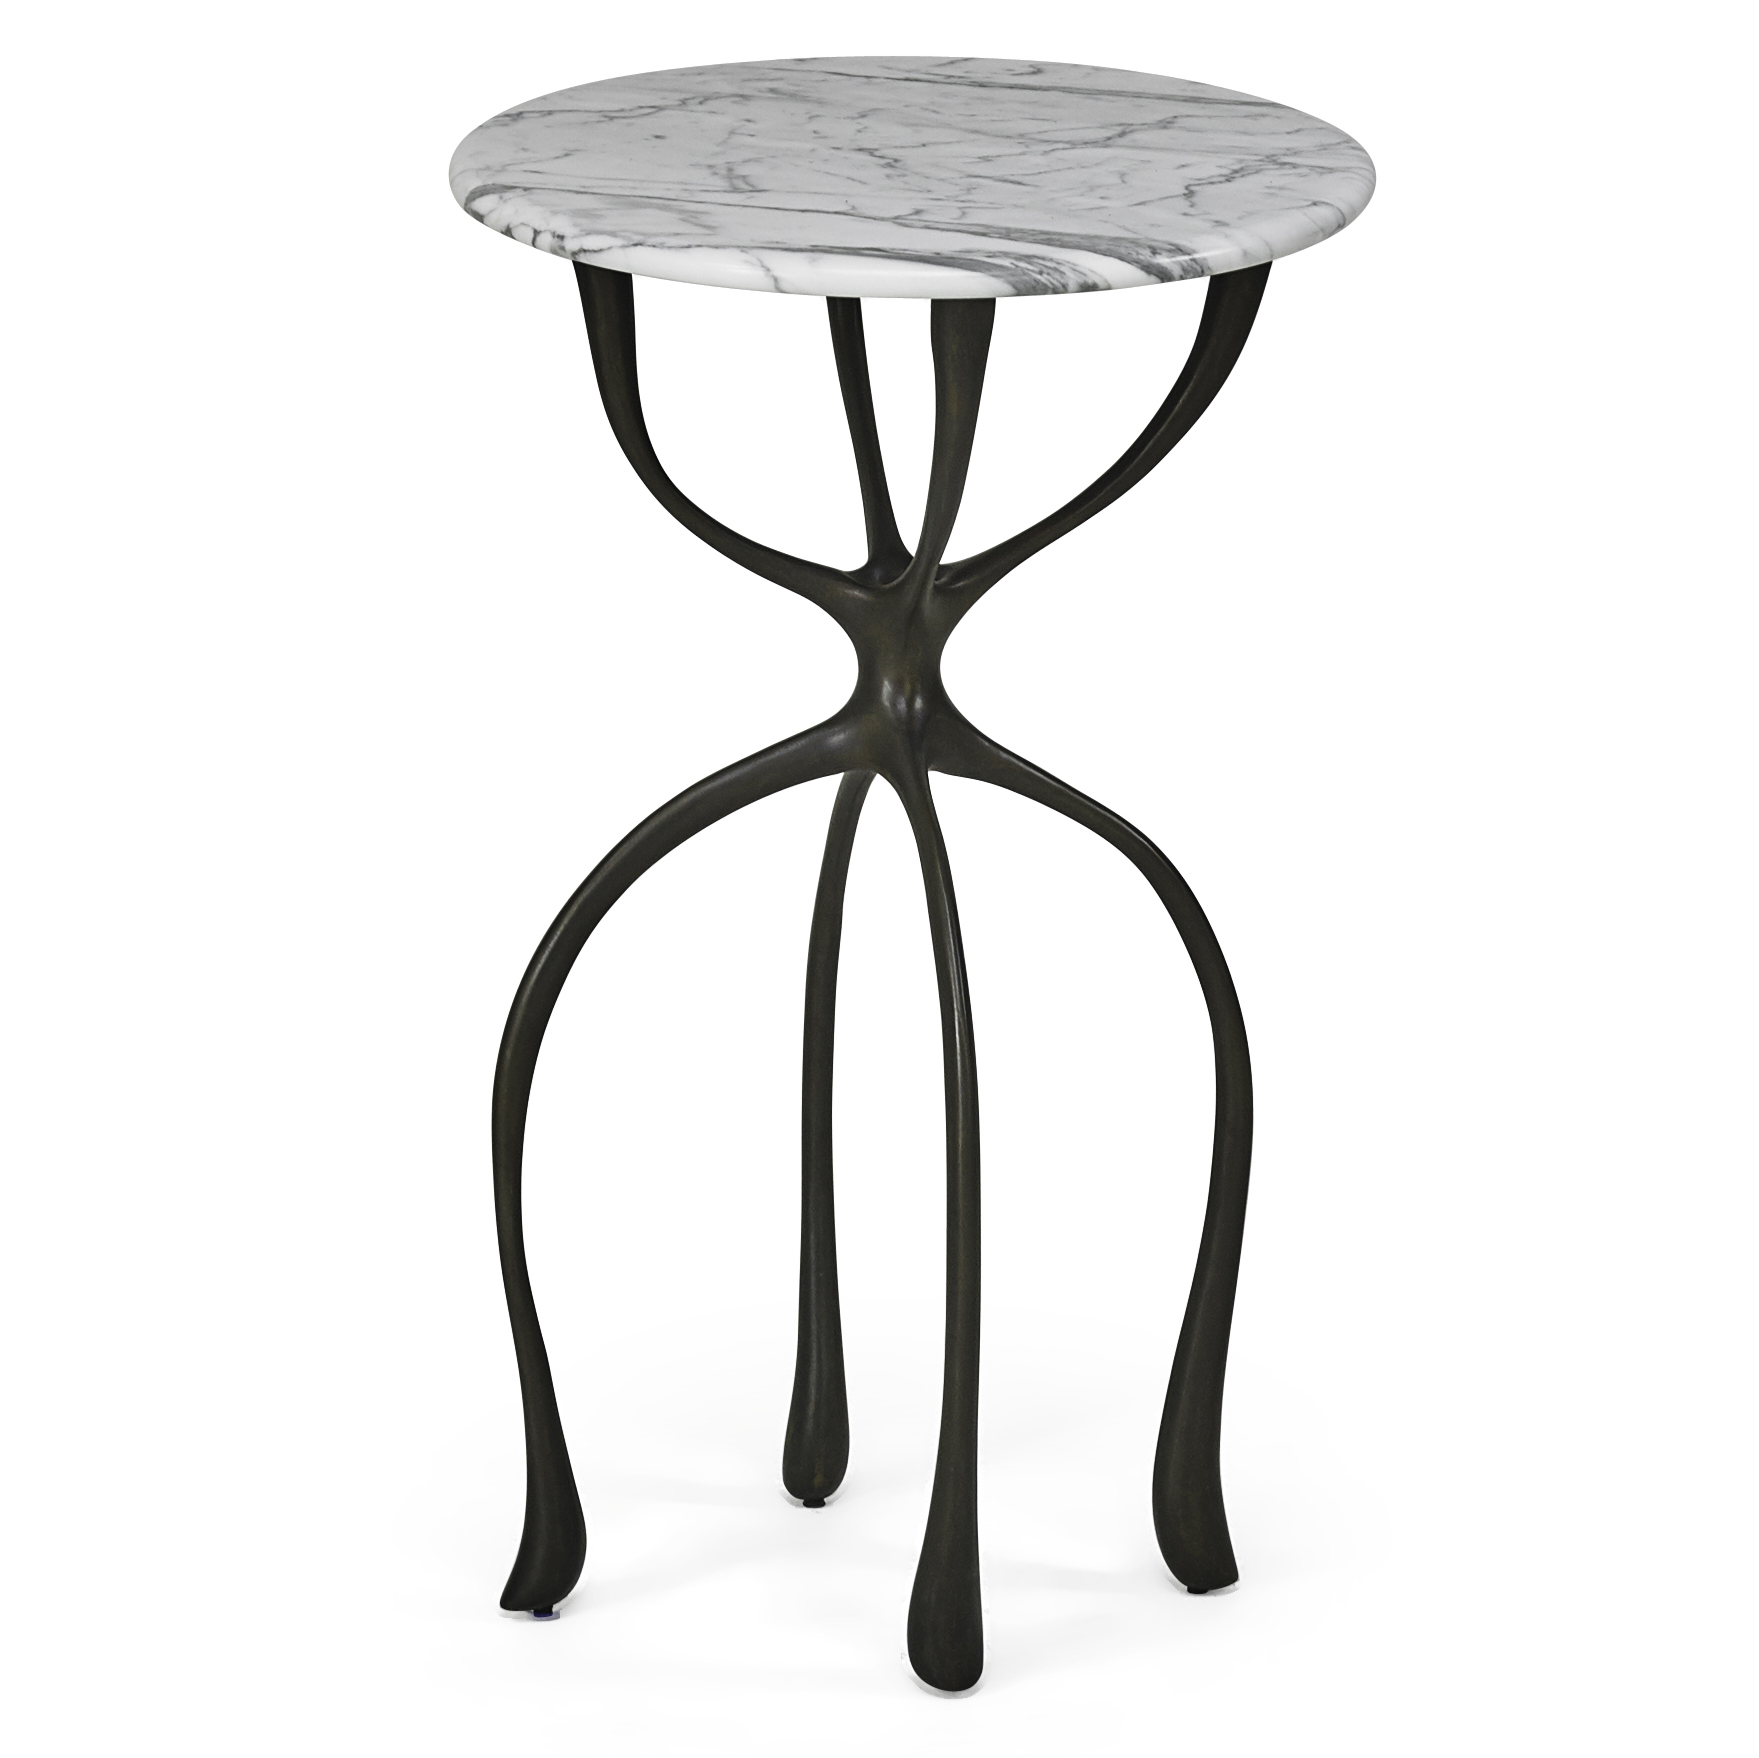 H57 Tall Table